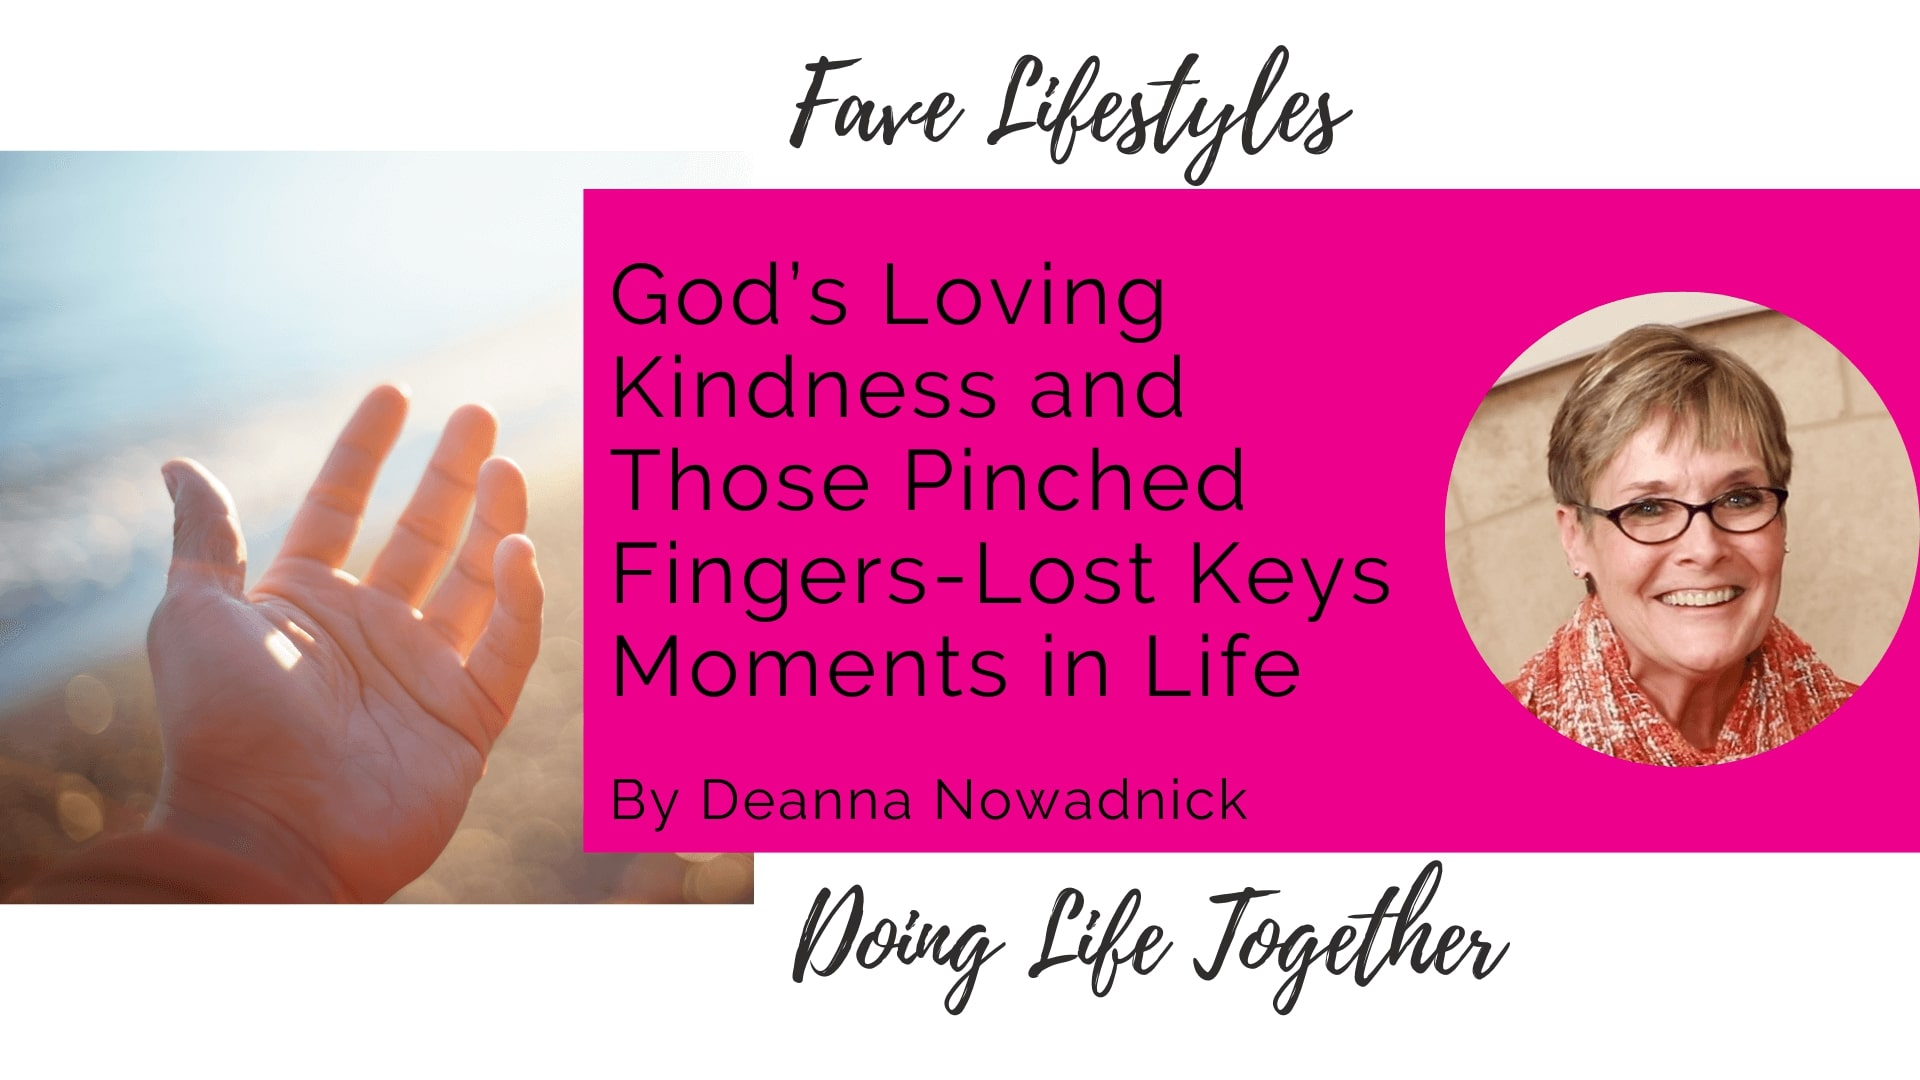 God's Loving Kindness and Those Pinched Fingers-Lost Keys Moments in Life